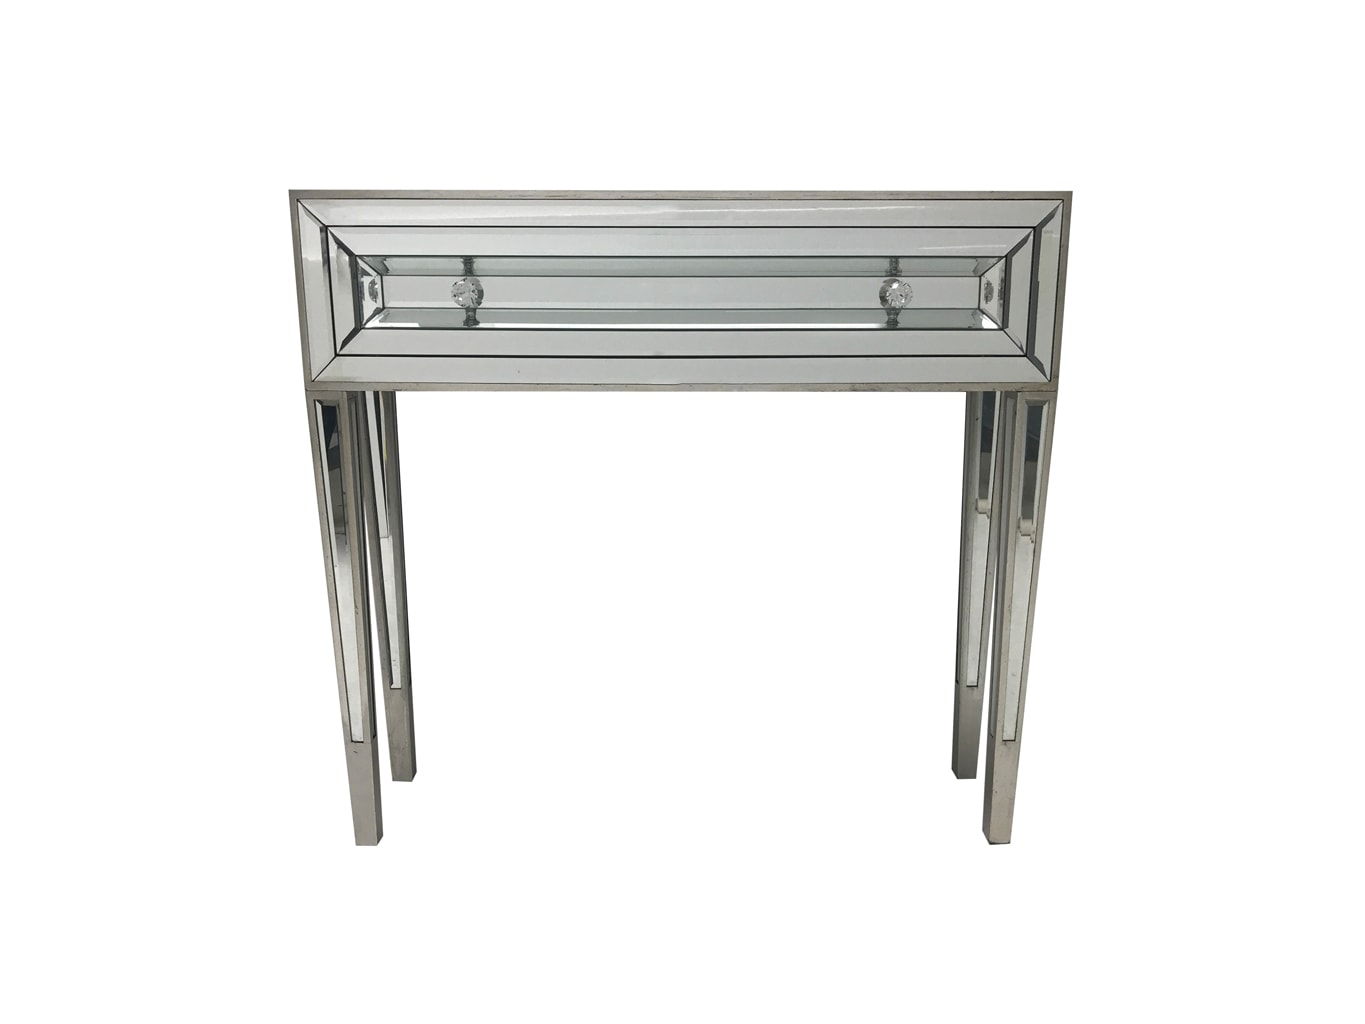 Hollywood mirrored console table with a single drawer, wood and mirror, vintage silver